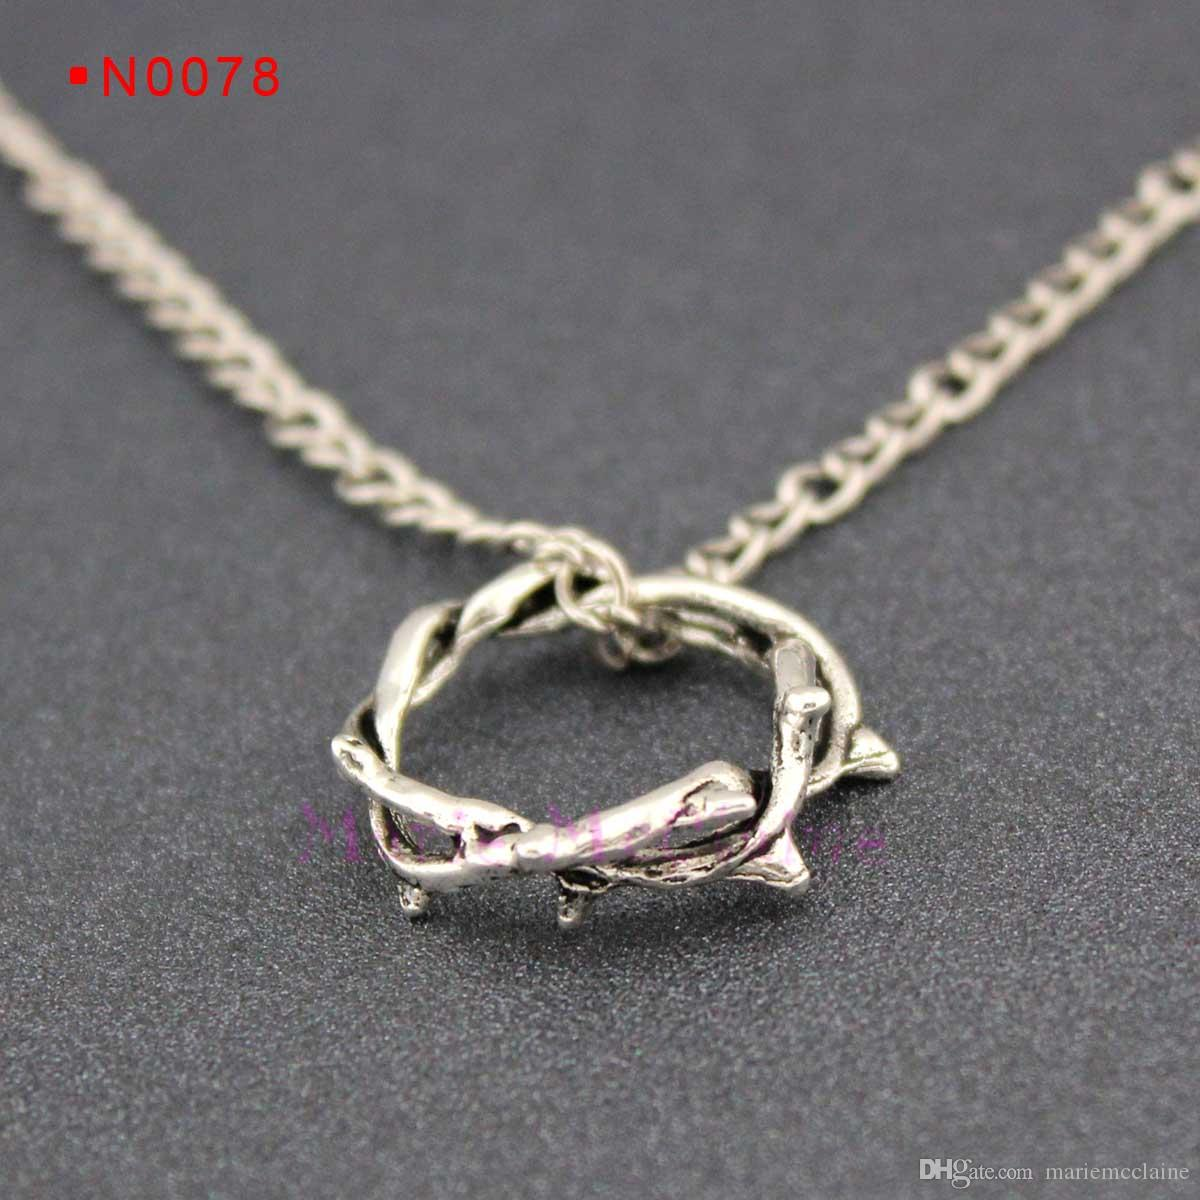 Wholesale crown of thorns charm necklaces thorn ring pendants wholesale crown of thorns charm necklaces thorn ring pendants necklaces twig ring branch ring alloy chain child girls gift women men jewelry single diamond aloadofball Images